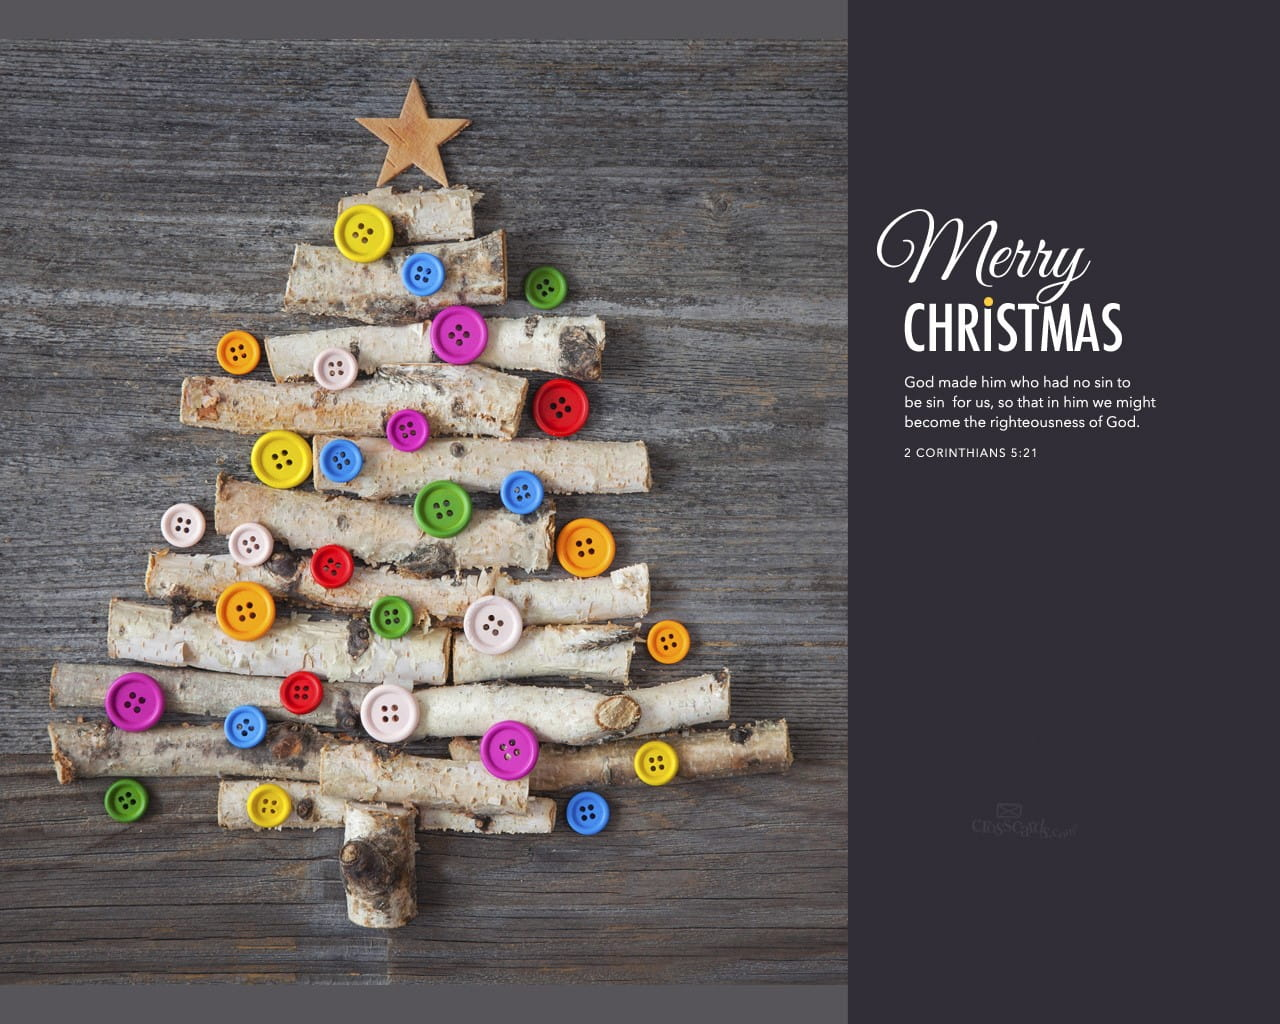 Bodacious Merry Merry Desk Wallpaper Free Winter Computer Mobile Christian Merry Images 2016 Christian Merry Images Free inspiration Christian Merry Christmas Images